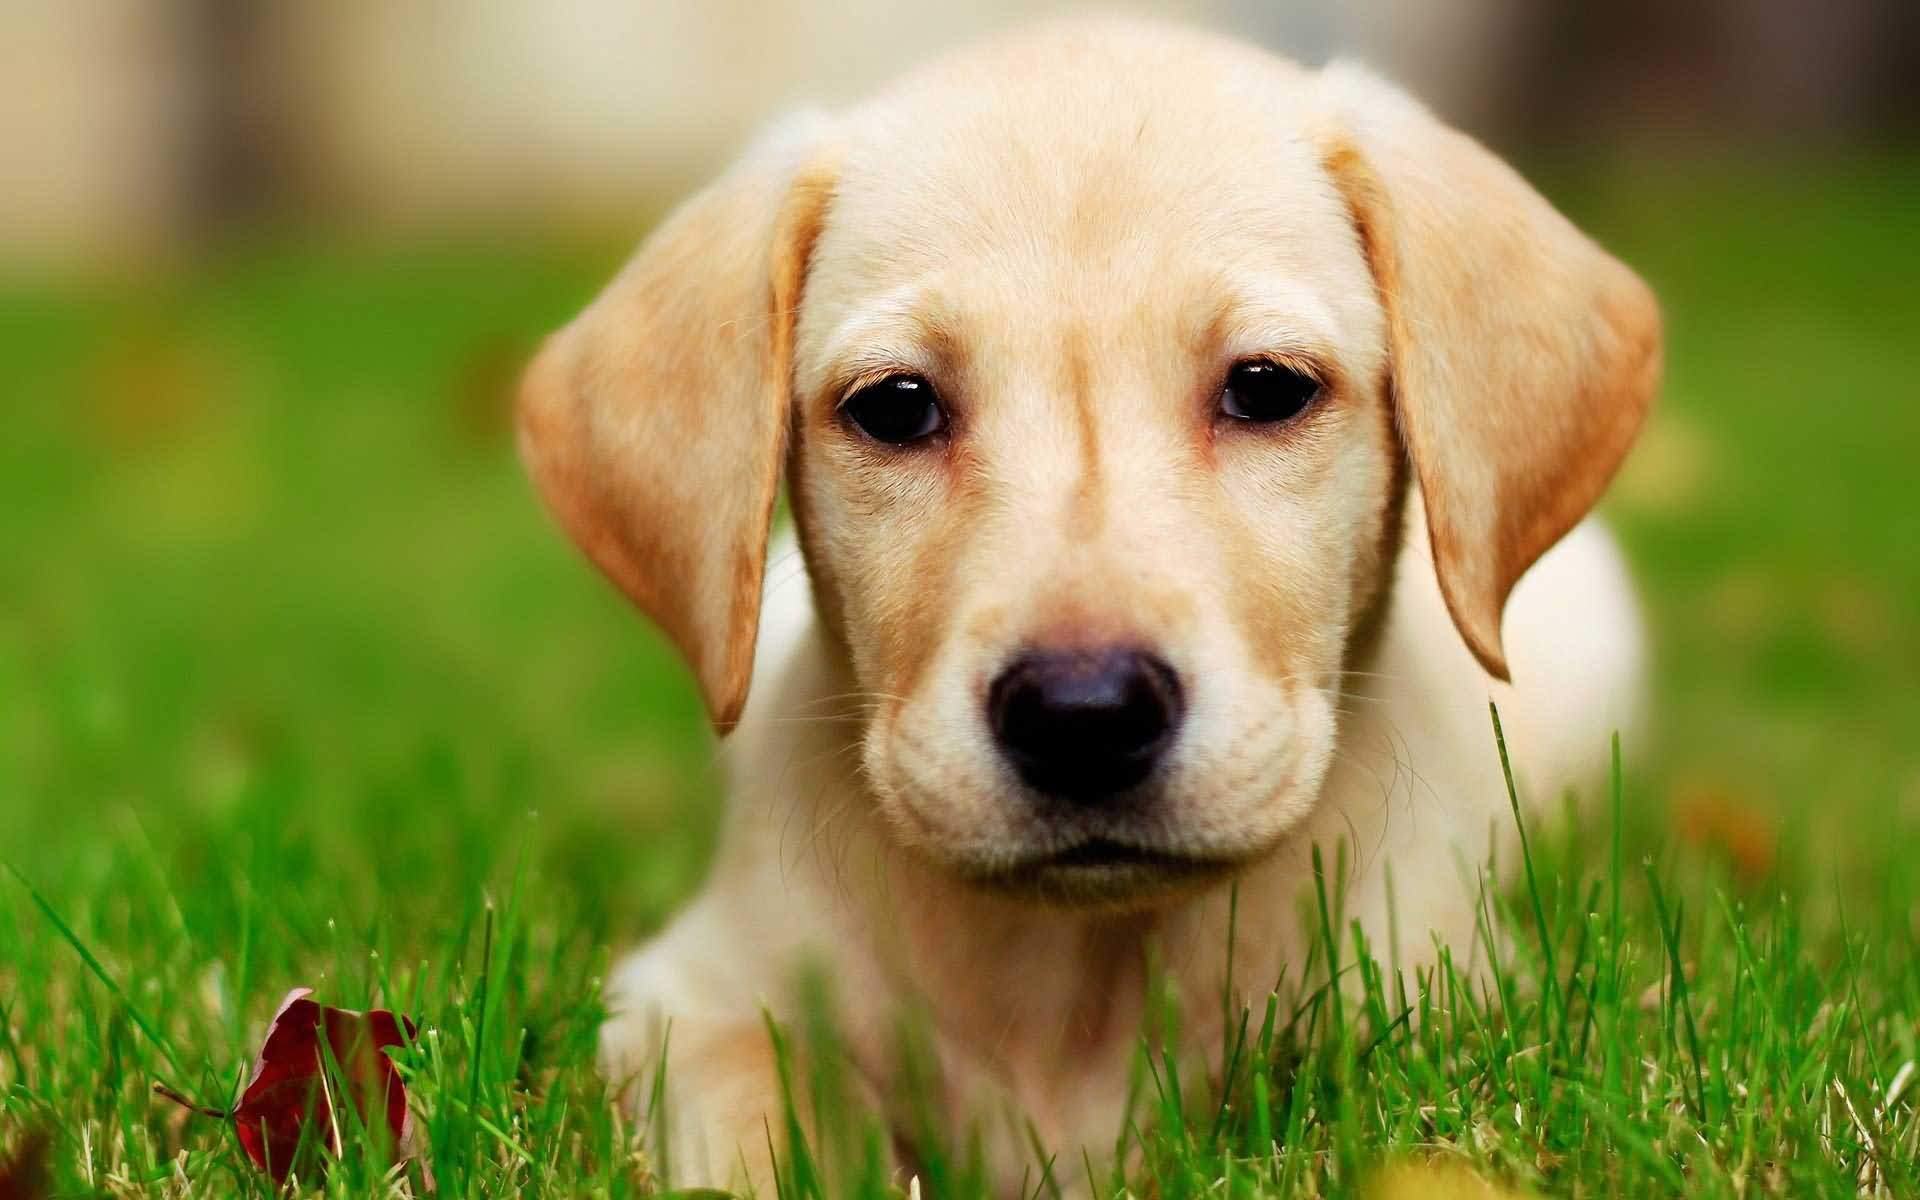 Most Beautiful Labrador Retriever Dog Pup Playing In Grass